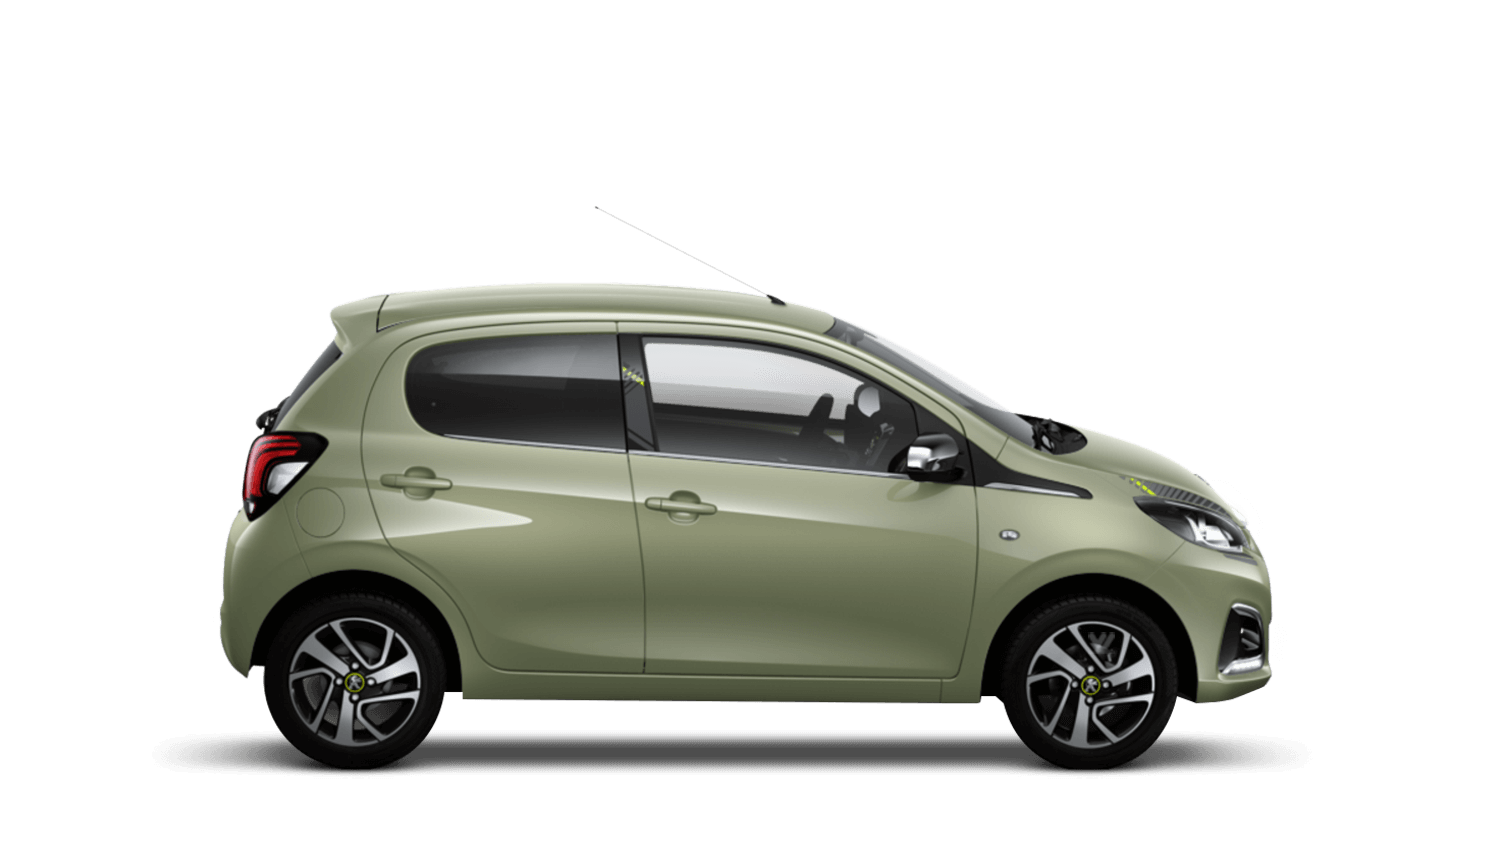 Smooth Green Peugeot 108